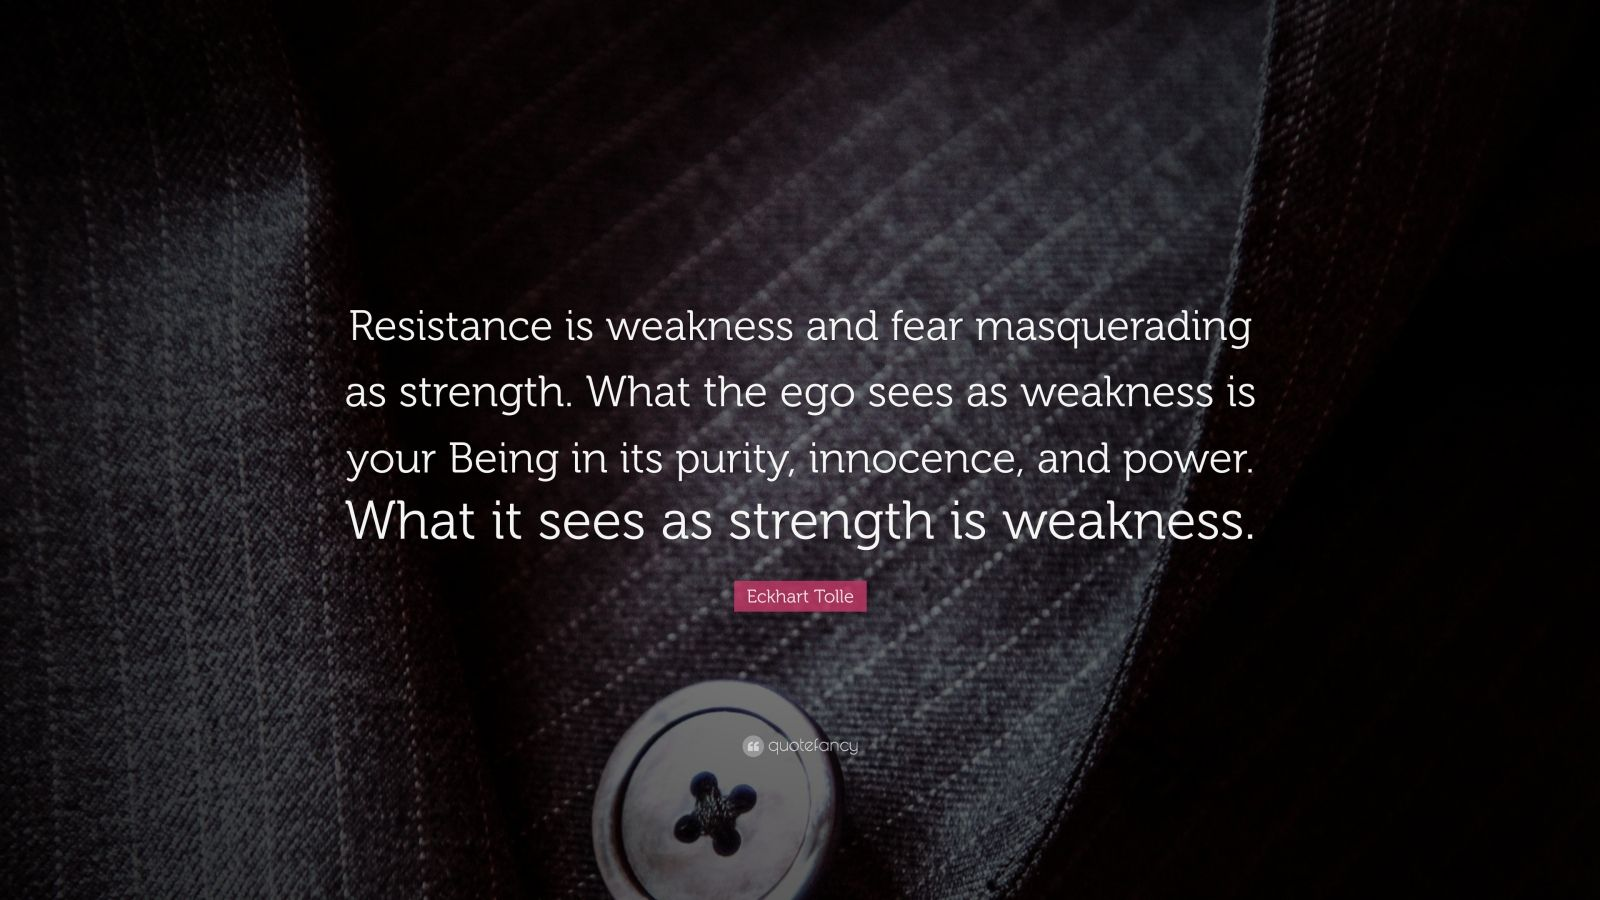 """Eckhart Tolle Quote: """"Resistance is weakness and fear masquerading as strength. What the ego sees as weakness is your Being in its purity, innocence, and power. What it sees as strength is weakness."""""""